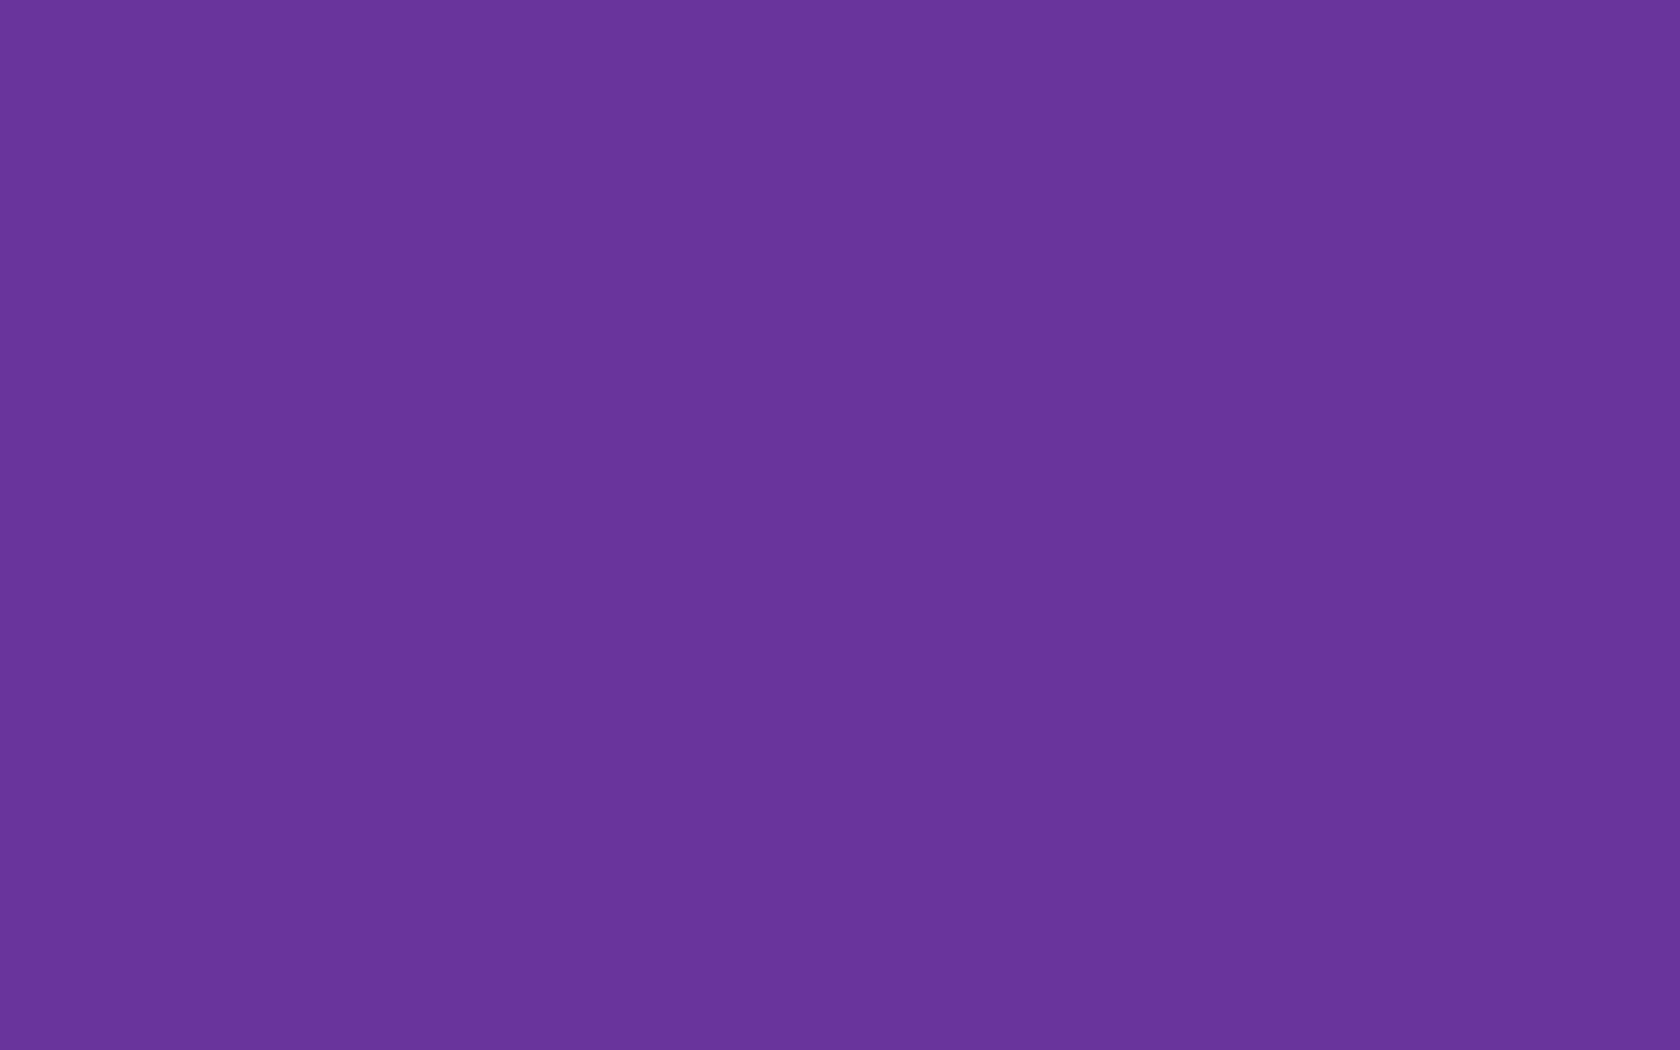 1680x1050 Purple Heart Solid Color Background